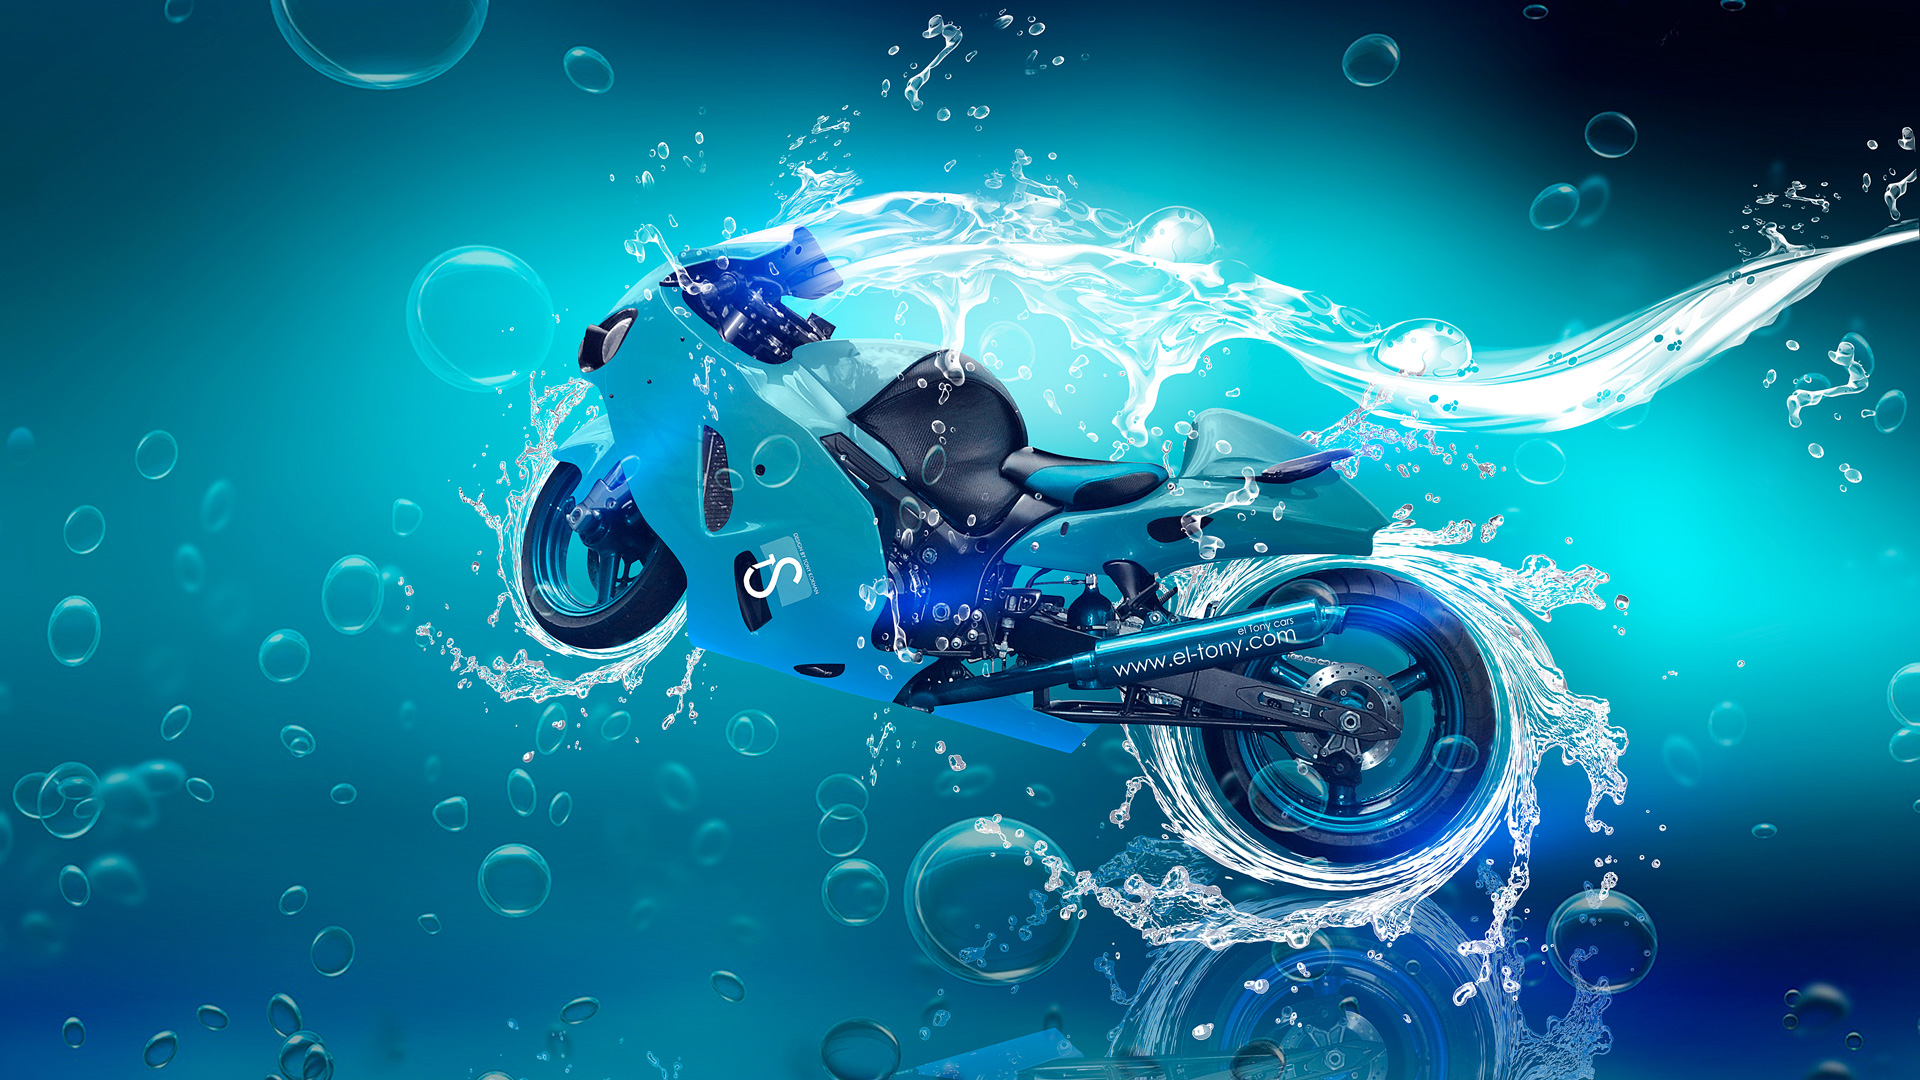 Ordinaire Suzuki Hayabusa Super Underwater Car 2014 Design By